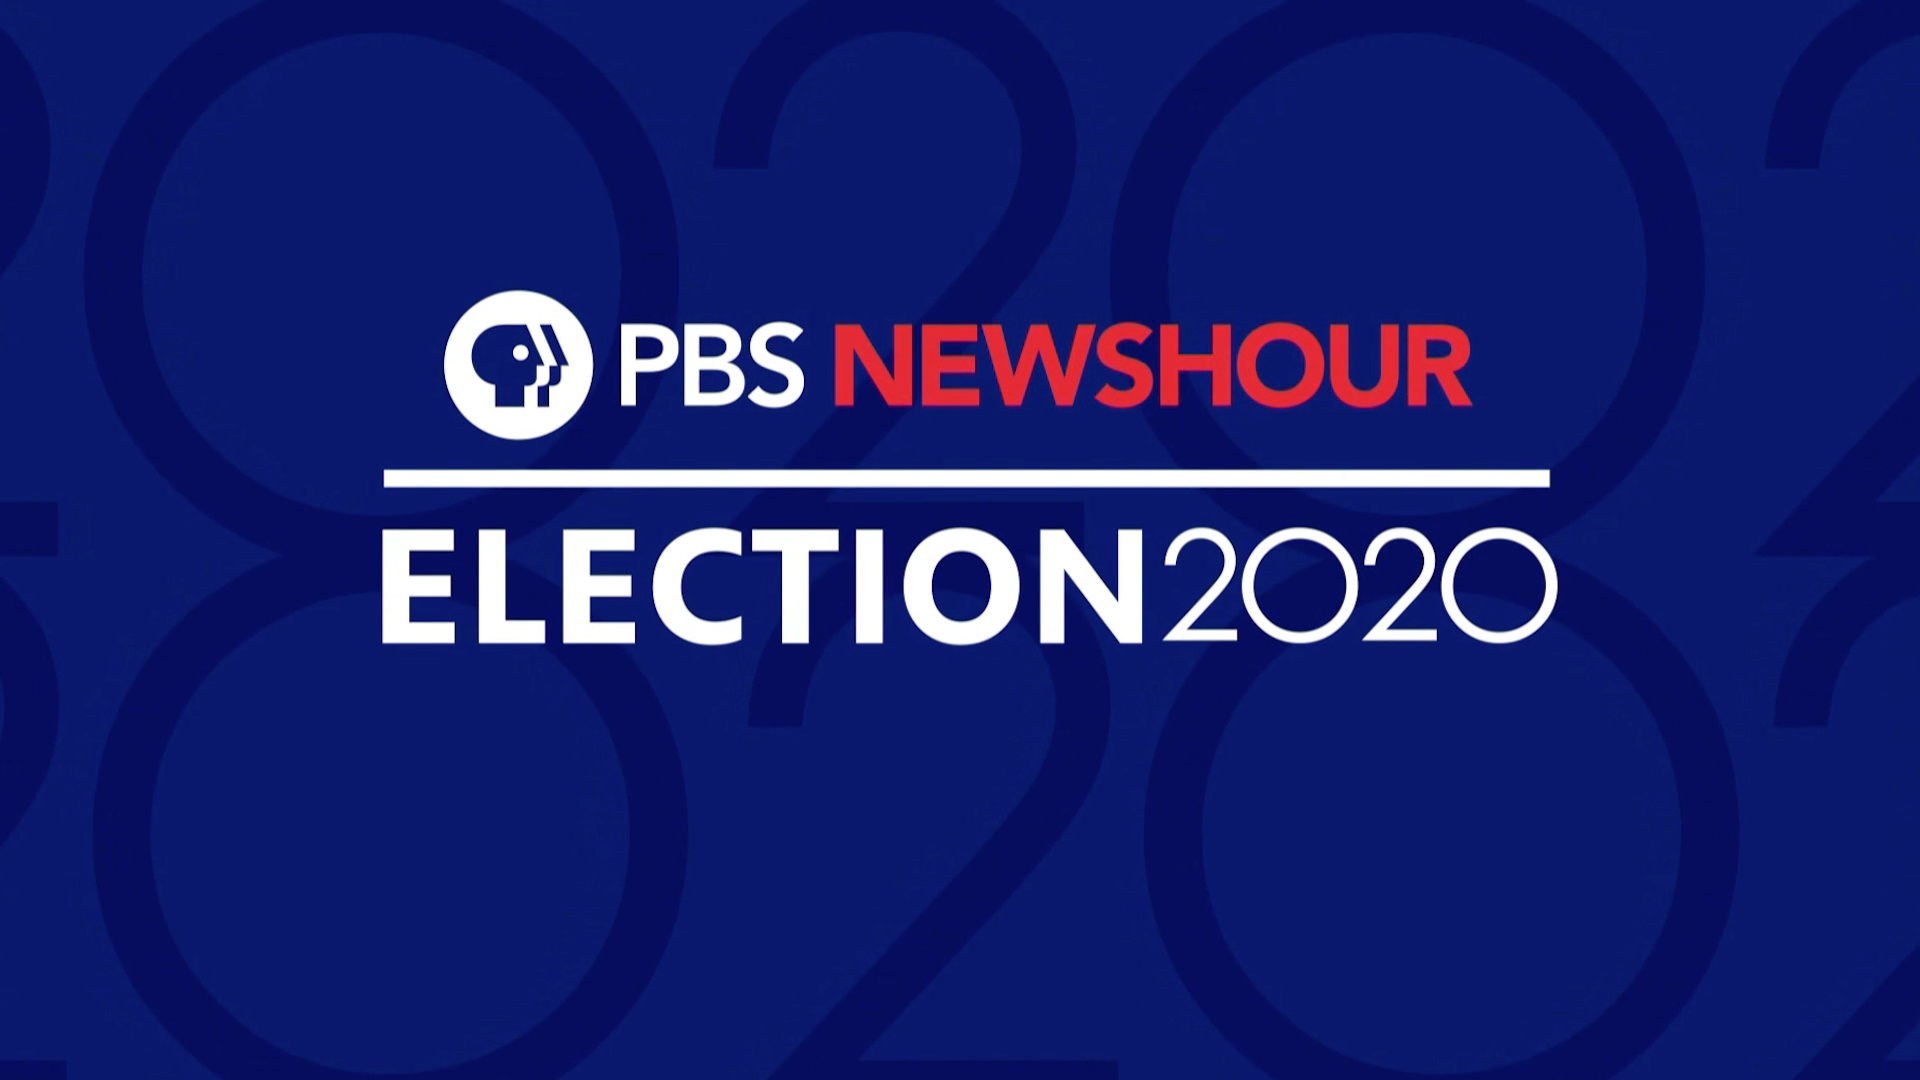 PBS Newshour Election Night Coverage 2020